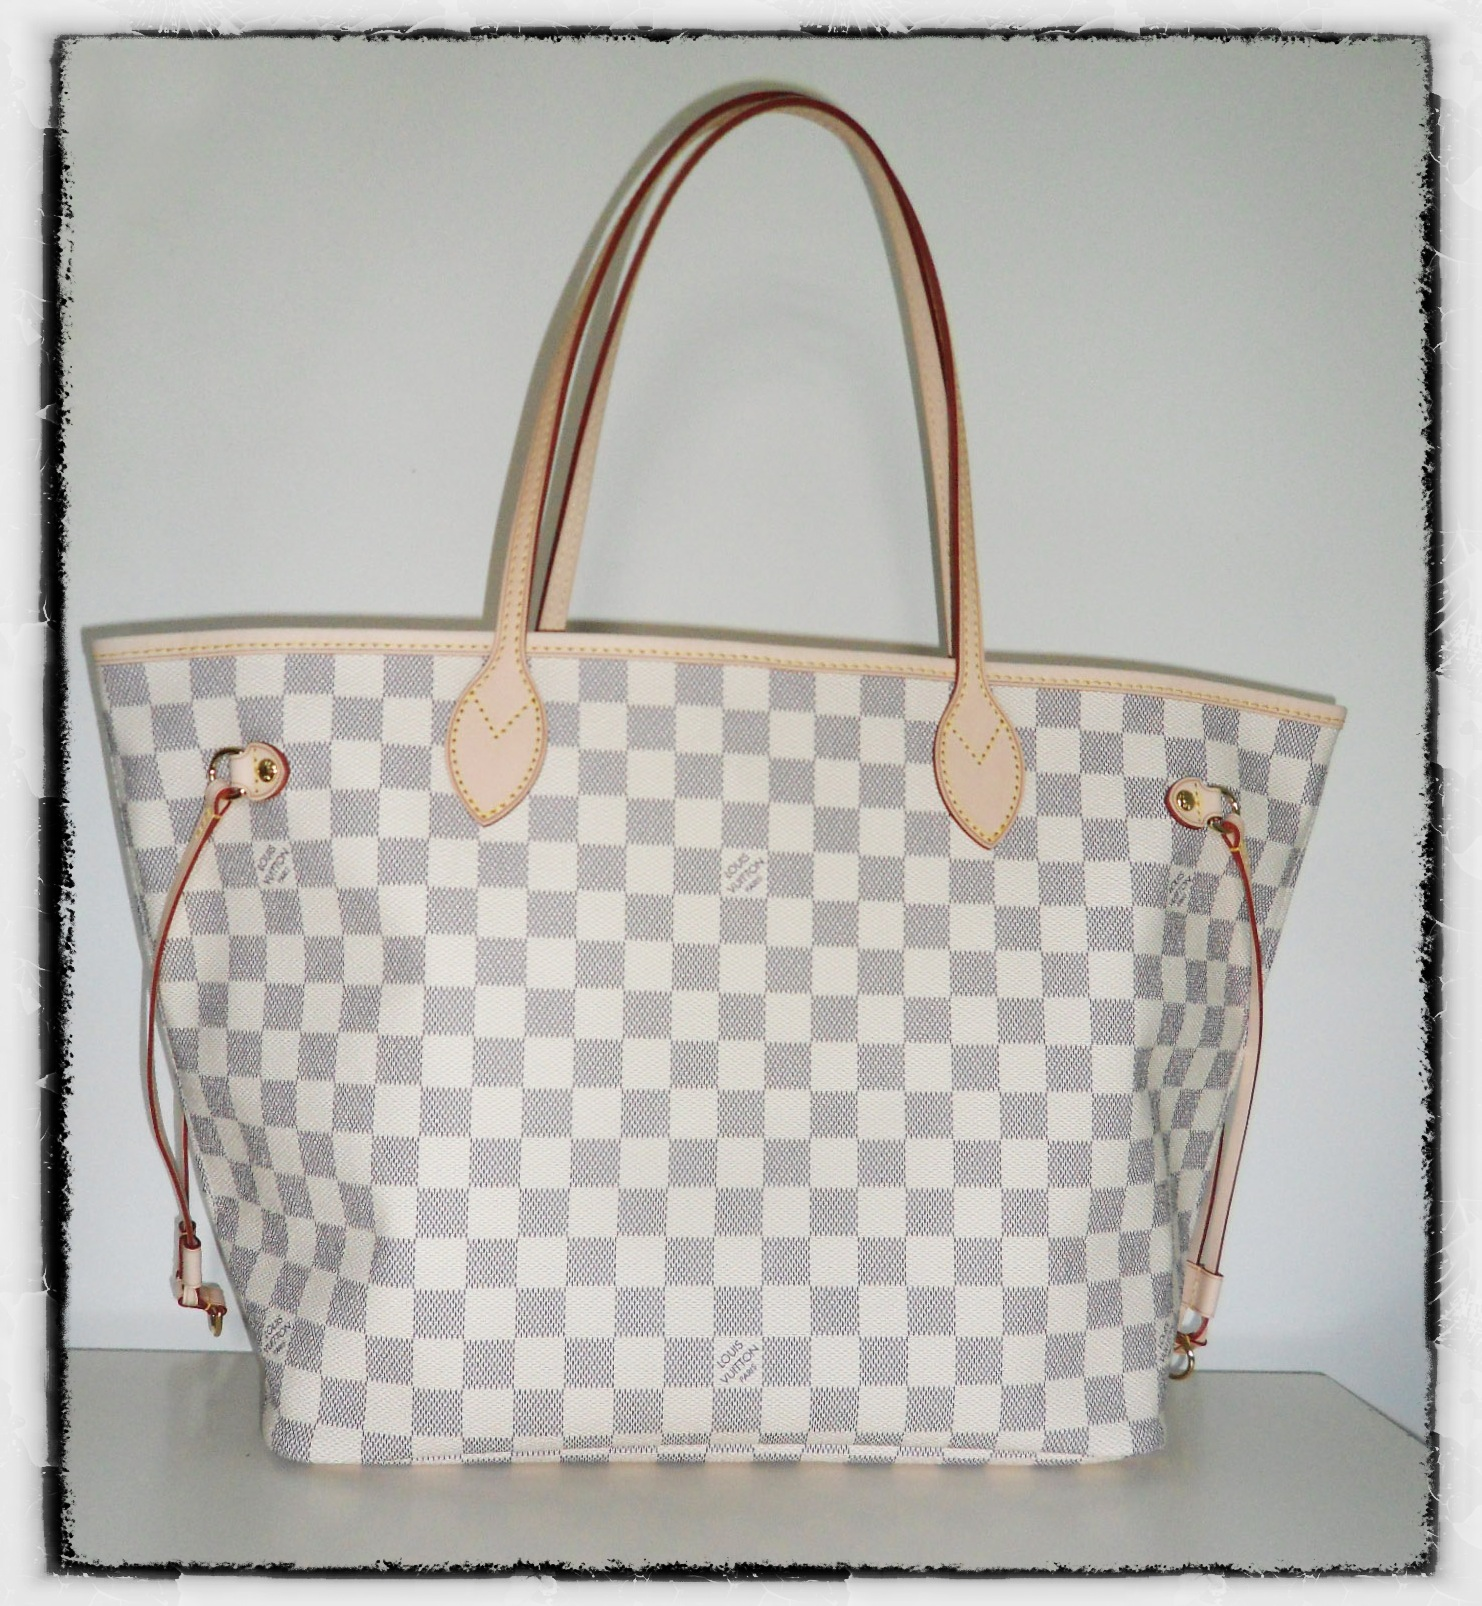 Sac Louis Vuitton Blanc Couleur